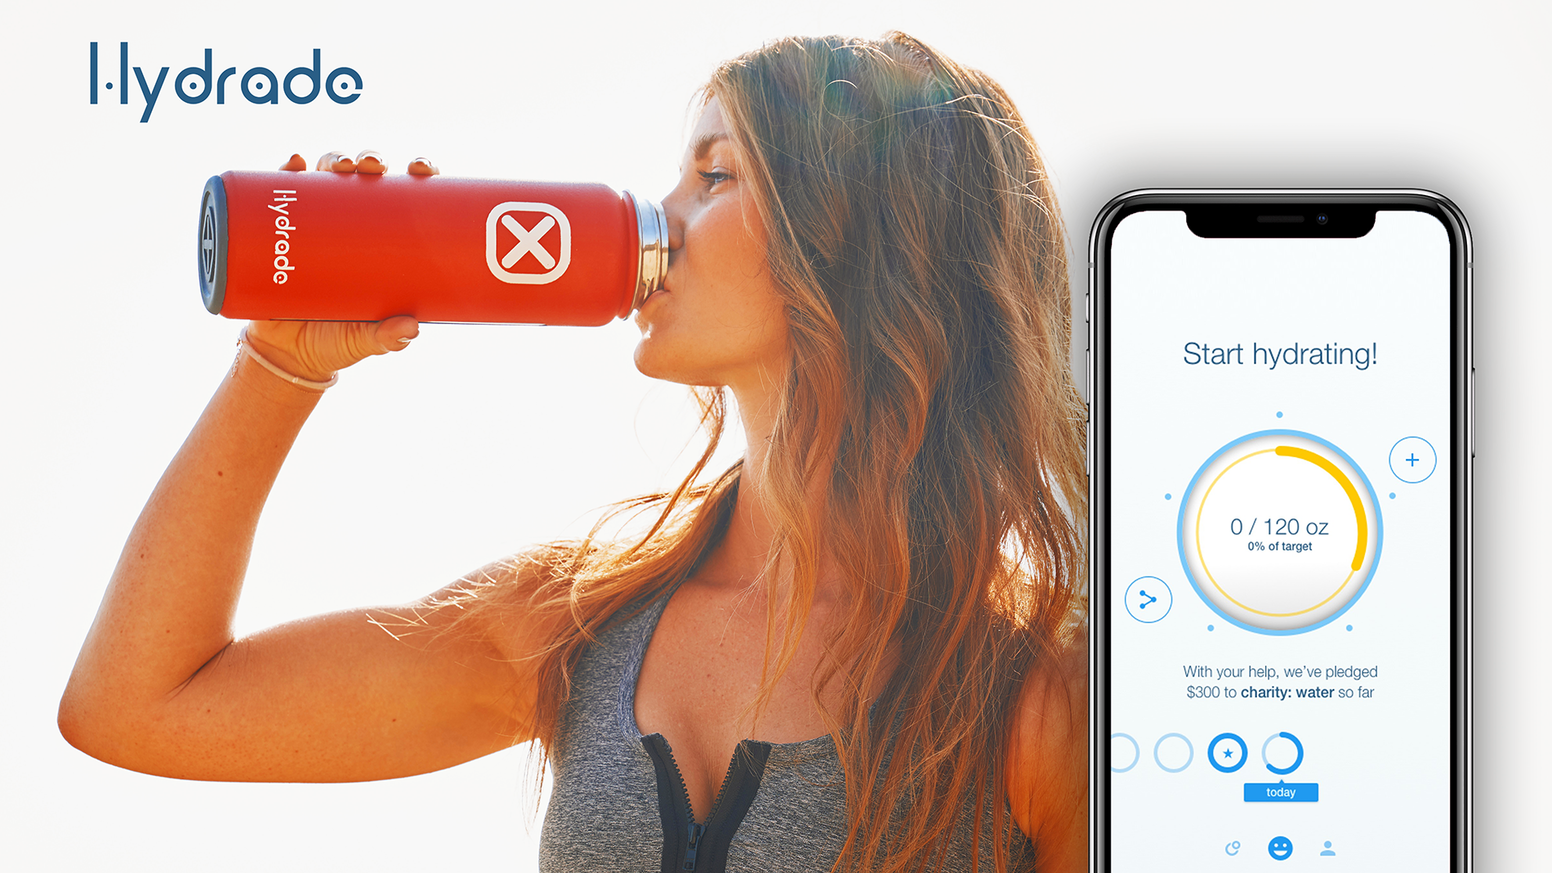 Hydrade's smart solar-powered insulated bottle recommends hydration levels, monitors intake, & donates to charity based on your intake.